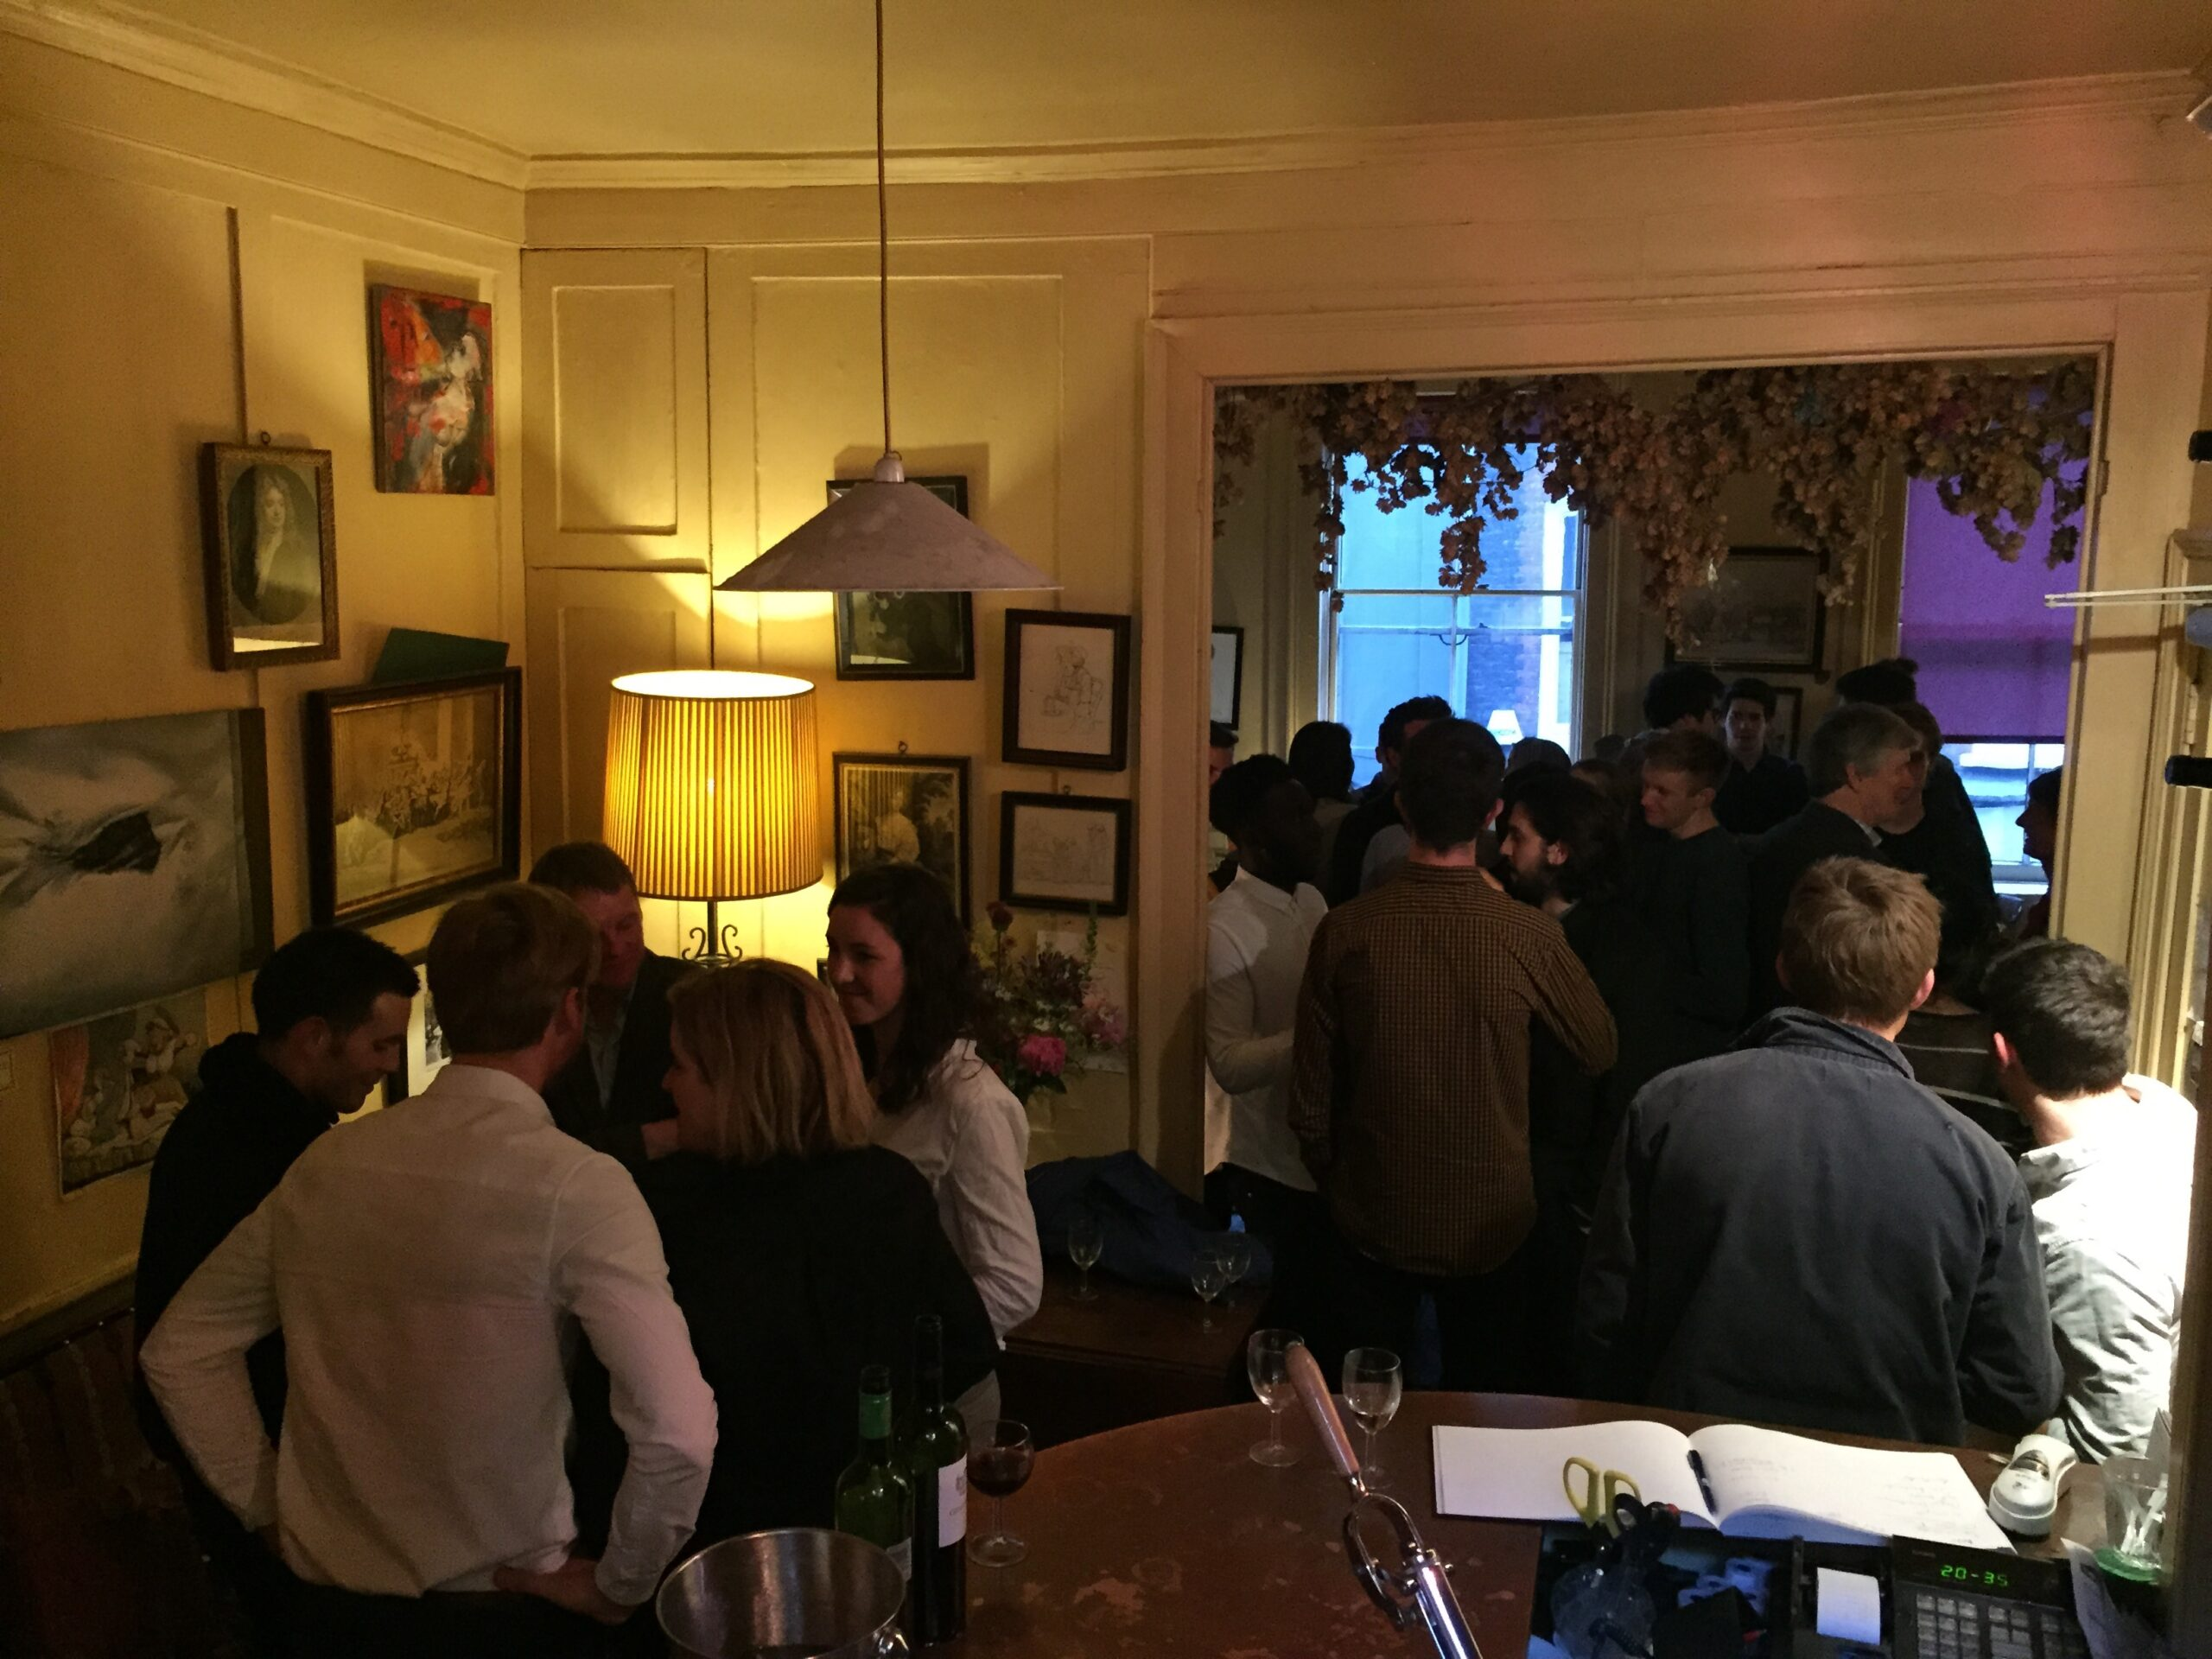 Fig. 25b. First student social event at the Academy Club in Soho, 22 May 2015, with Deborah Saunt and Tom Holbrook in the foreground.